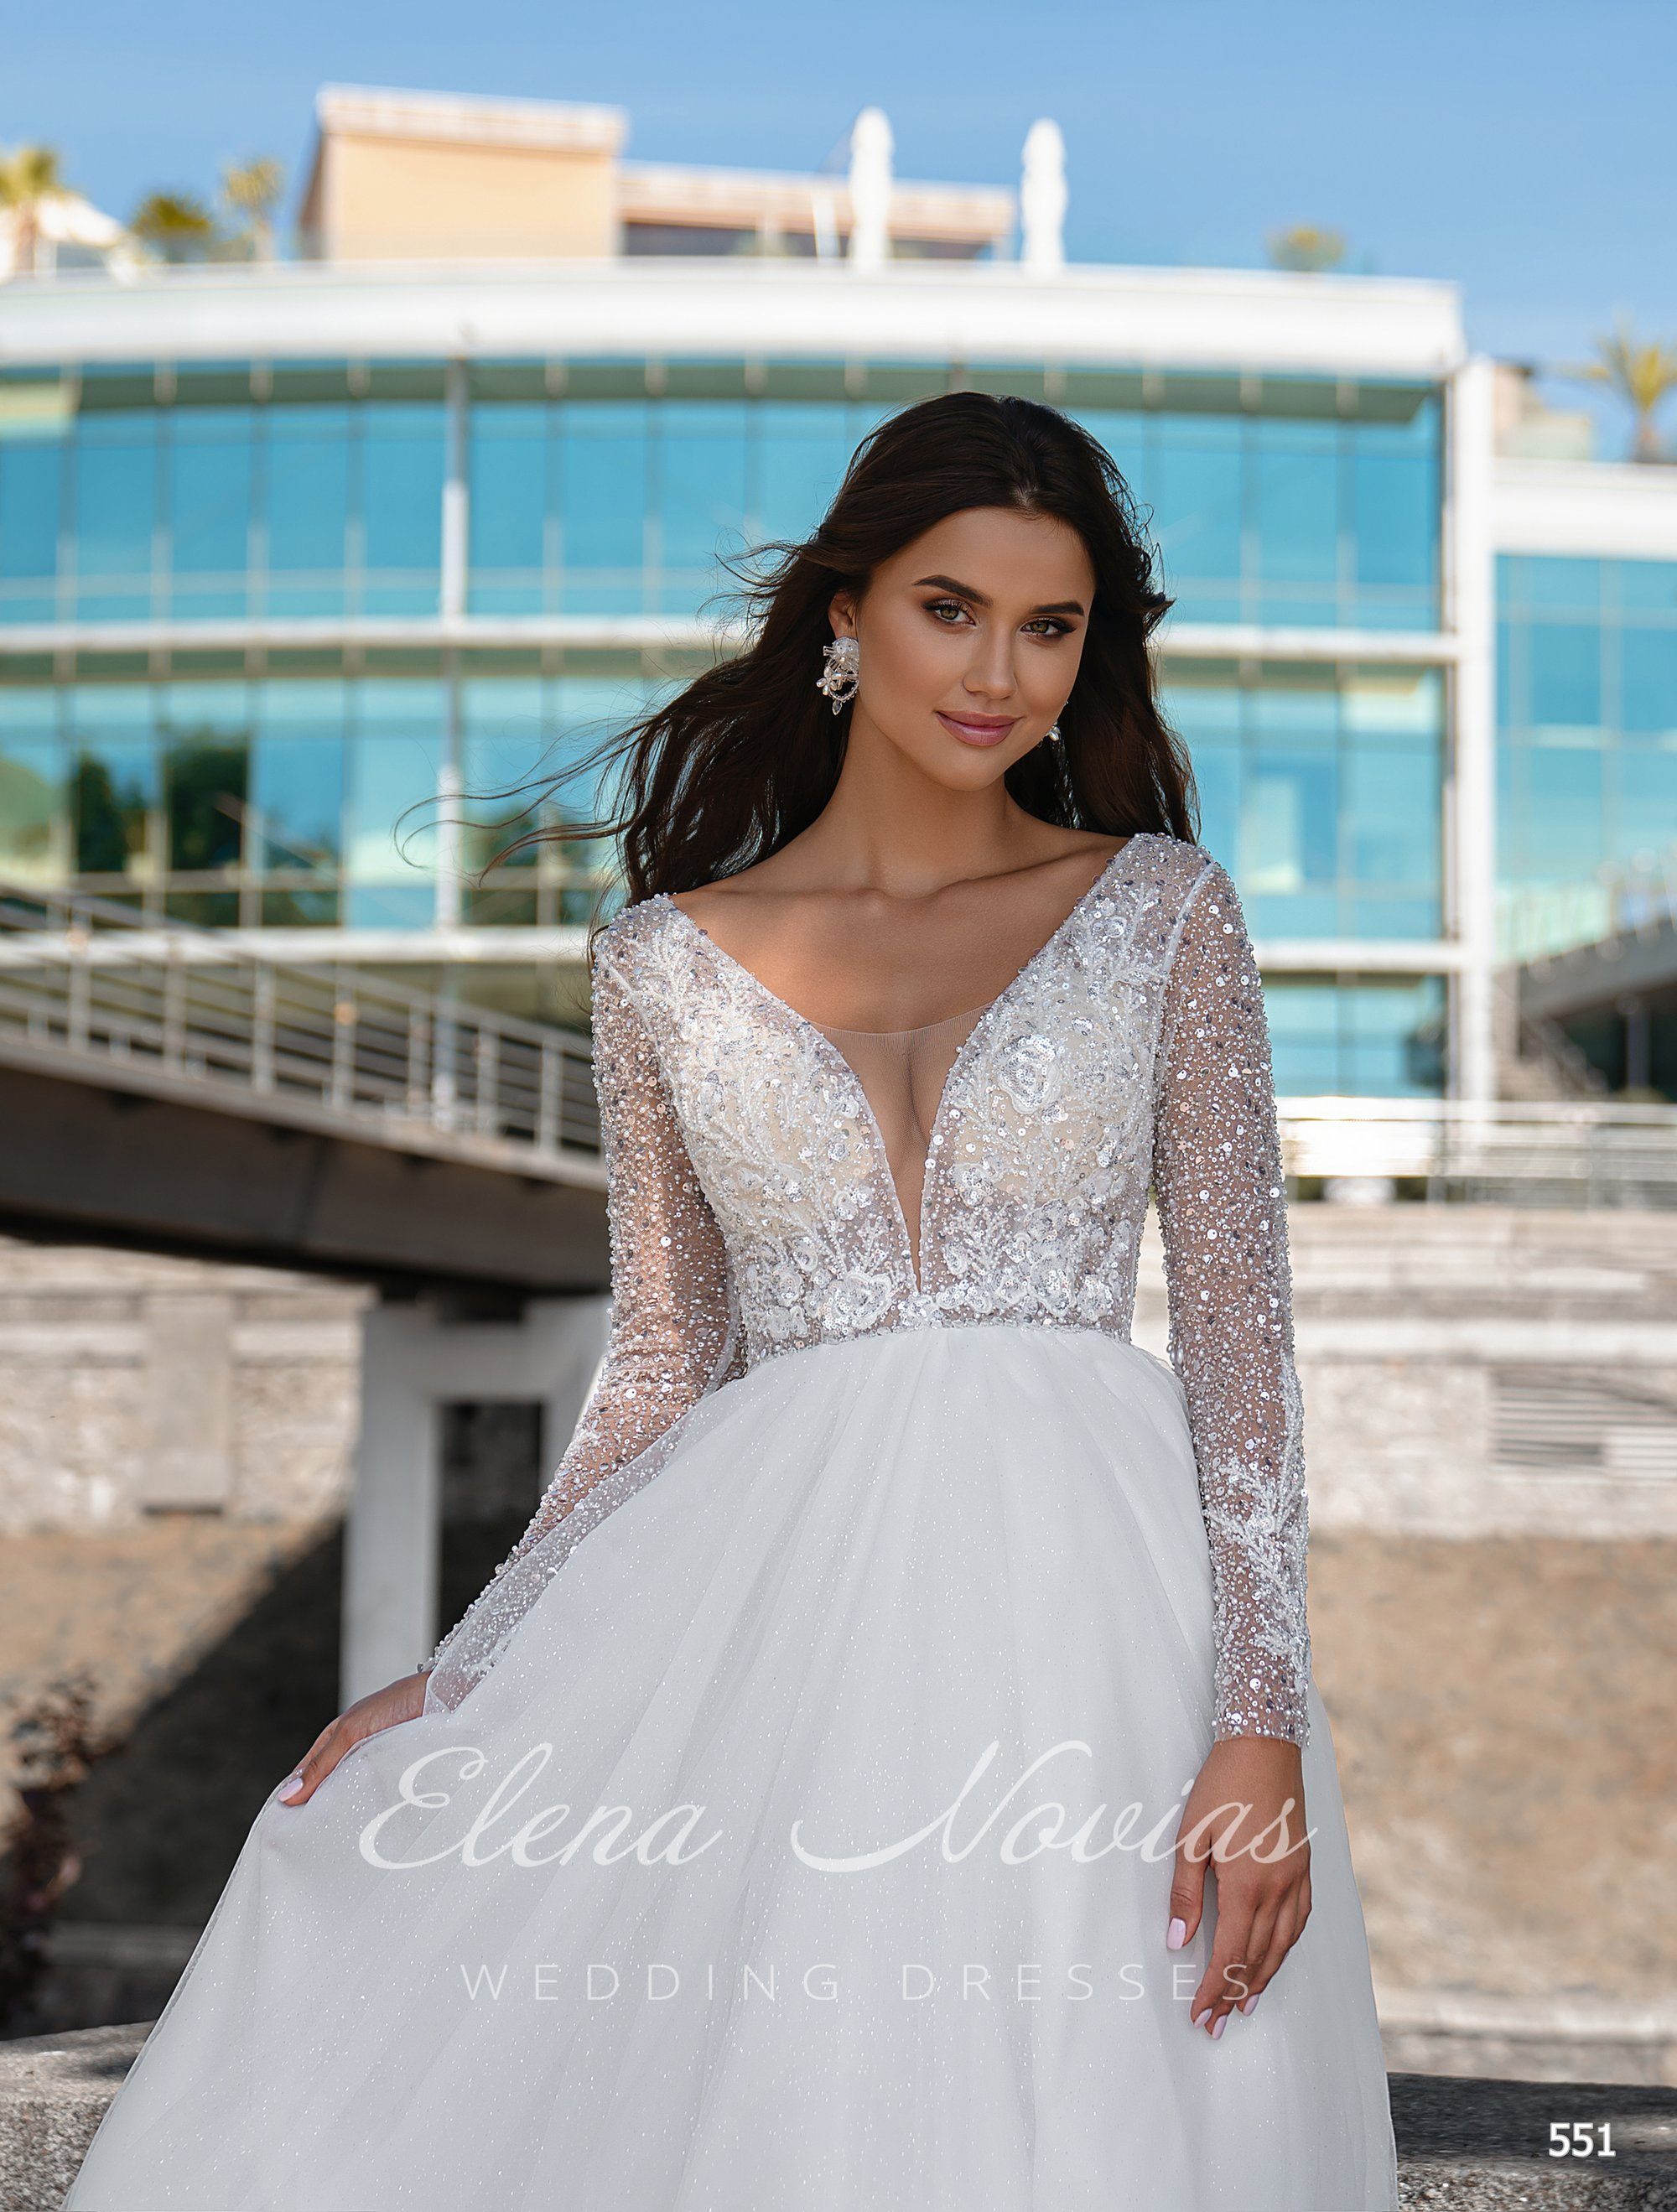 Wedding dresses 551